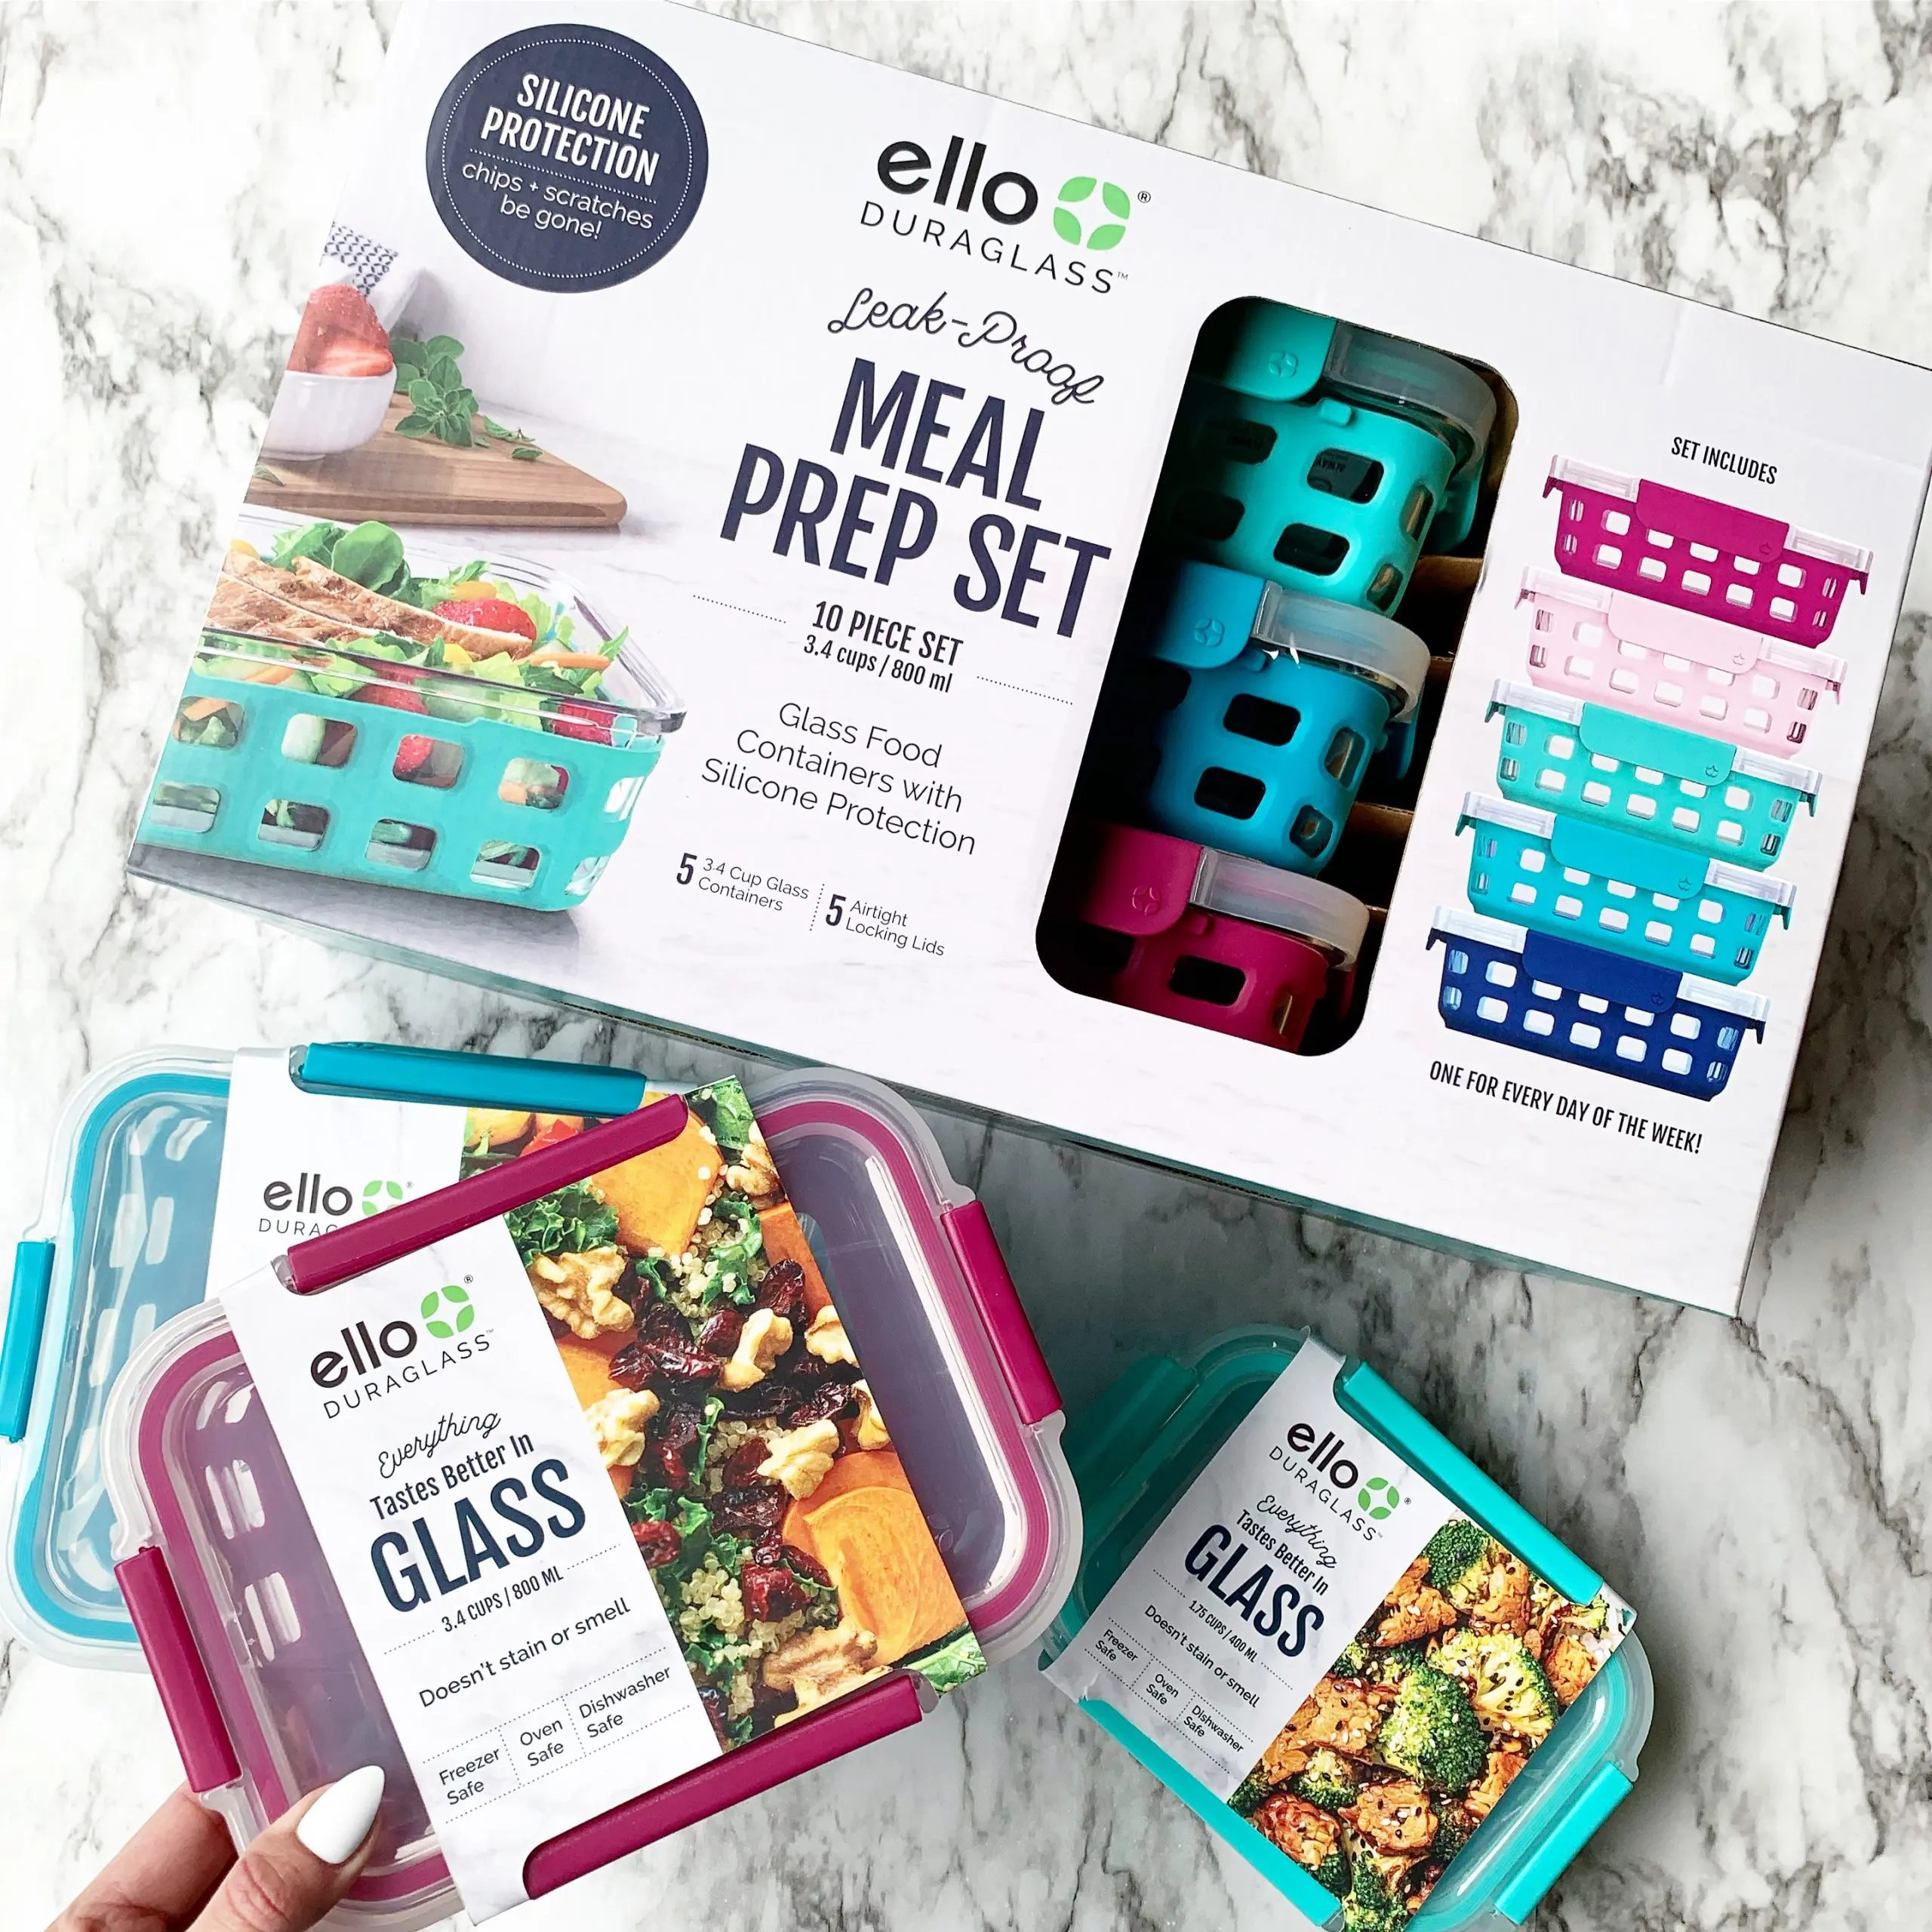 Ello Meal Prep Glass Storage Containers and Bakeware